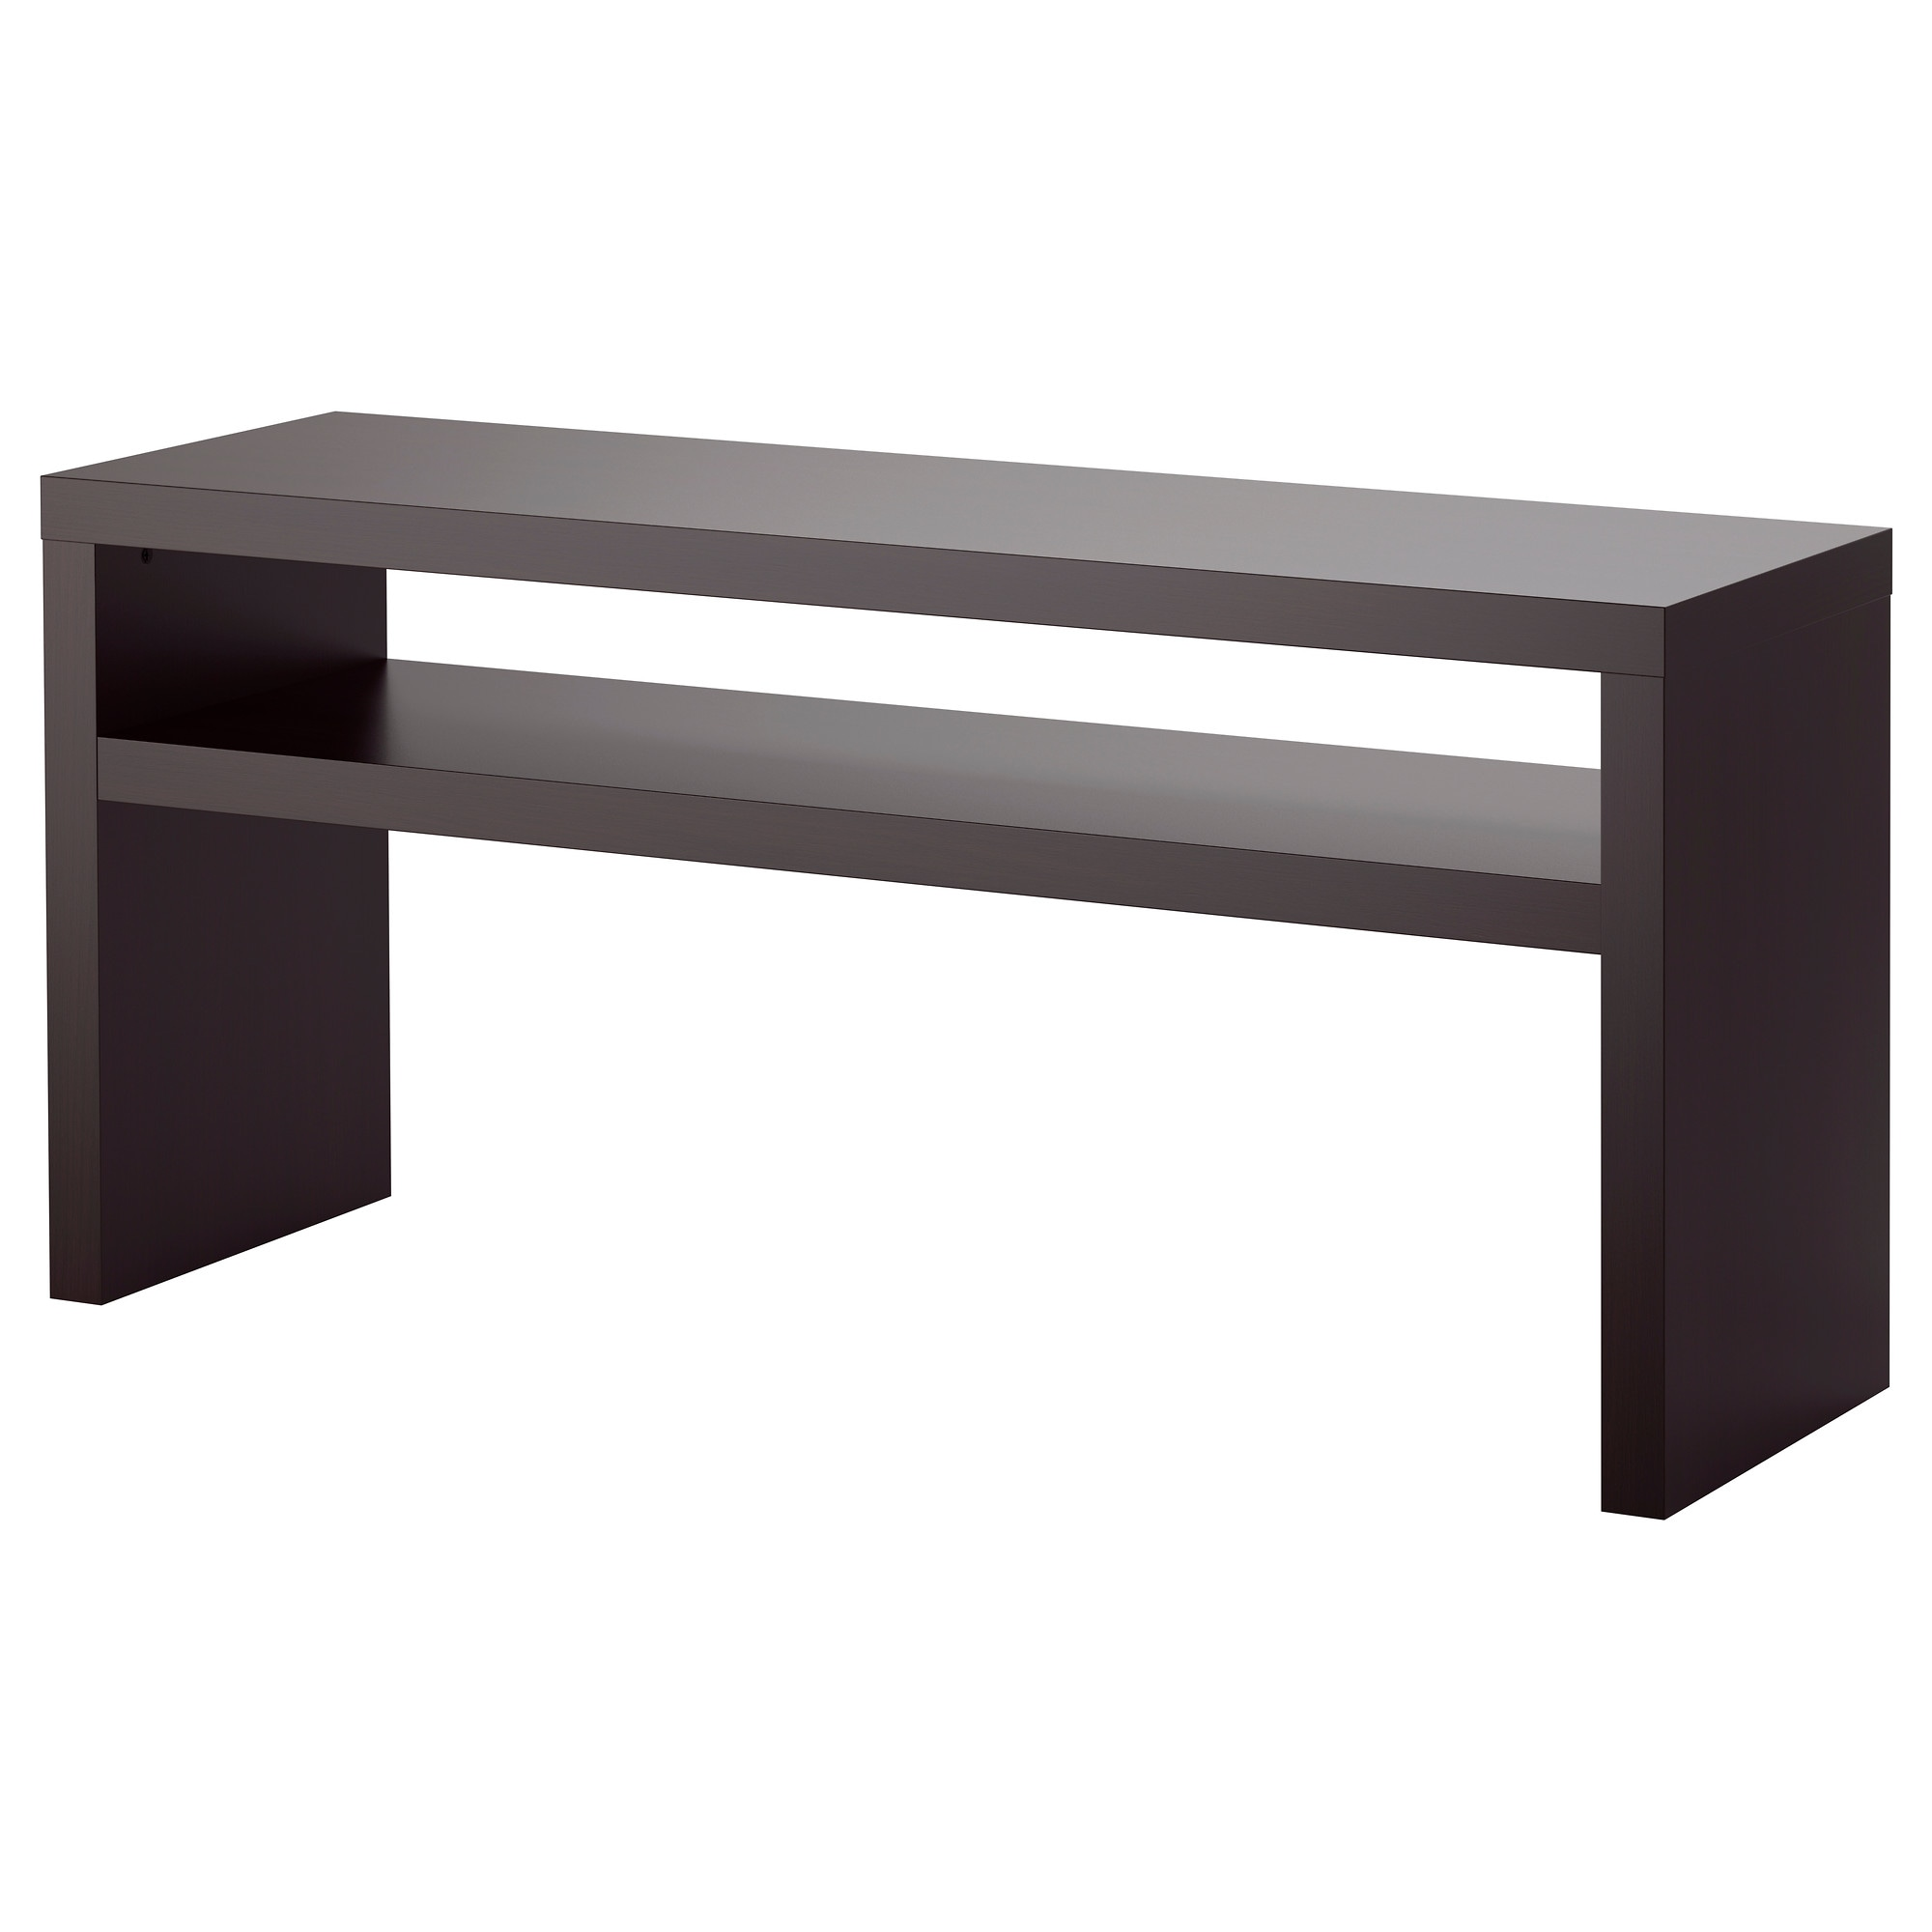 . lack console table  ikea